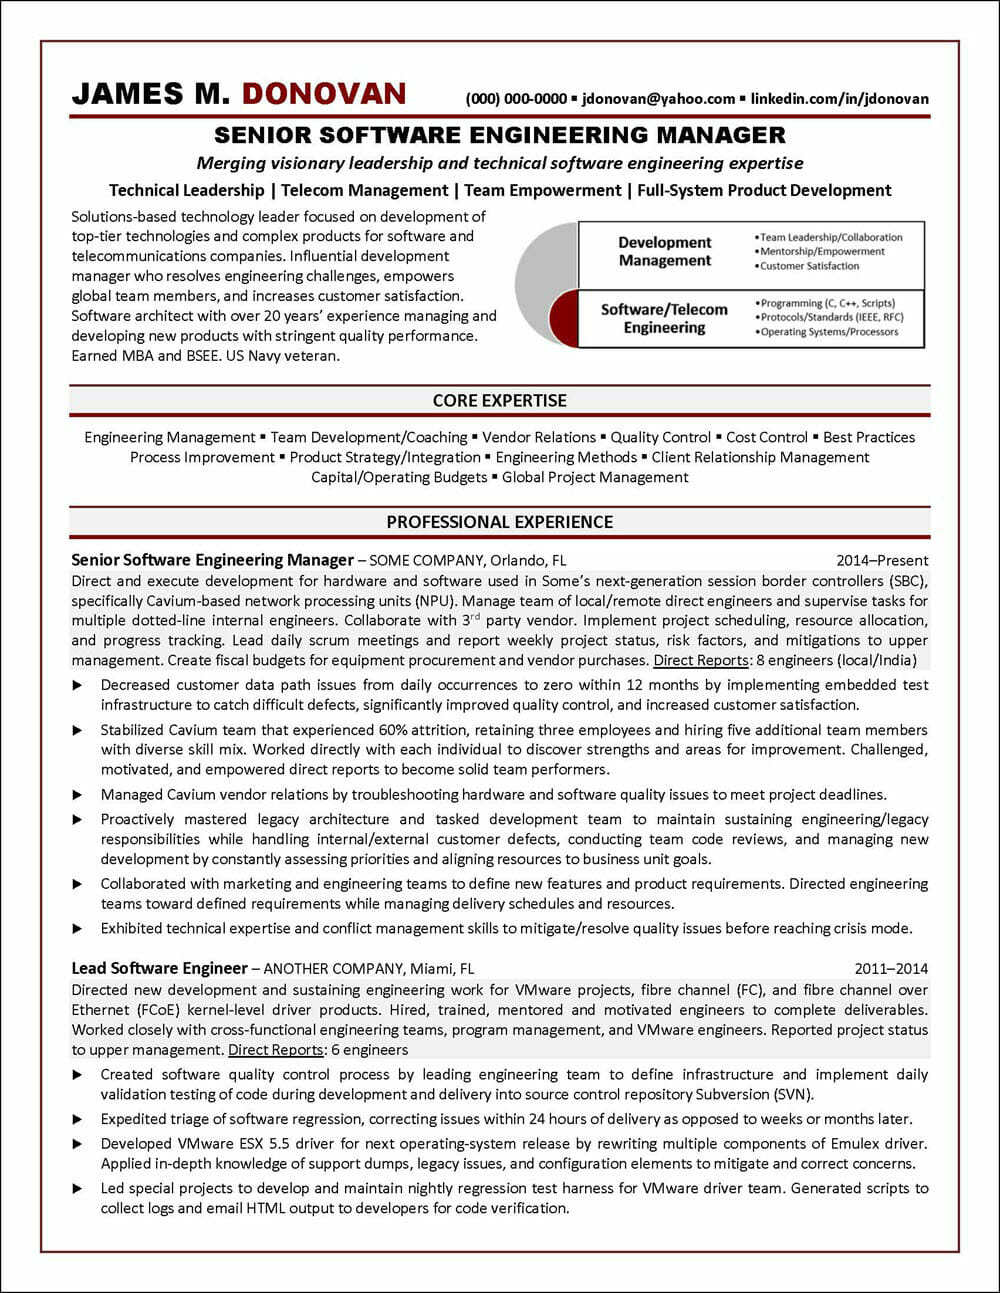 software engineer resume example distinctive career services technical examples Resume Technical Resume Examples 2019